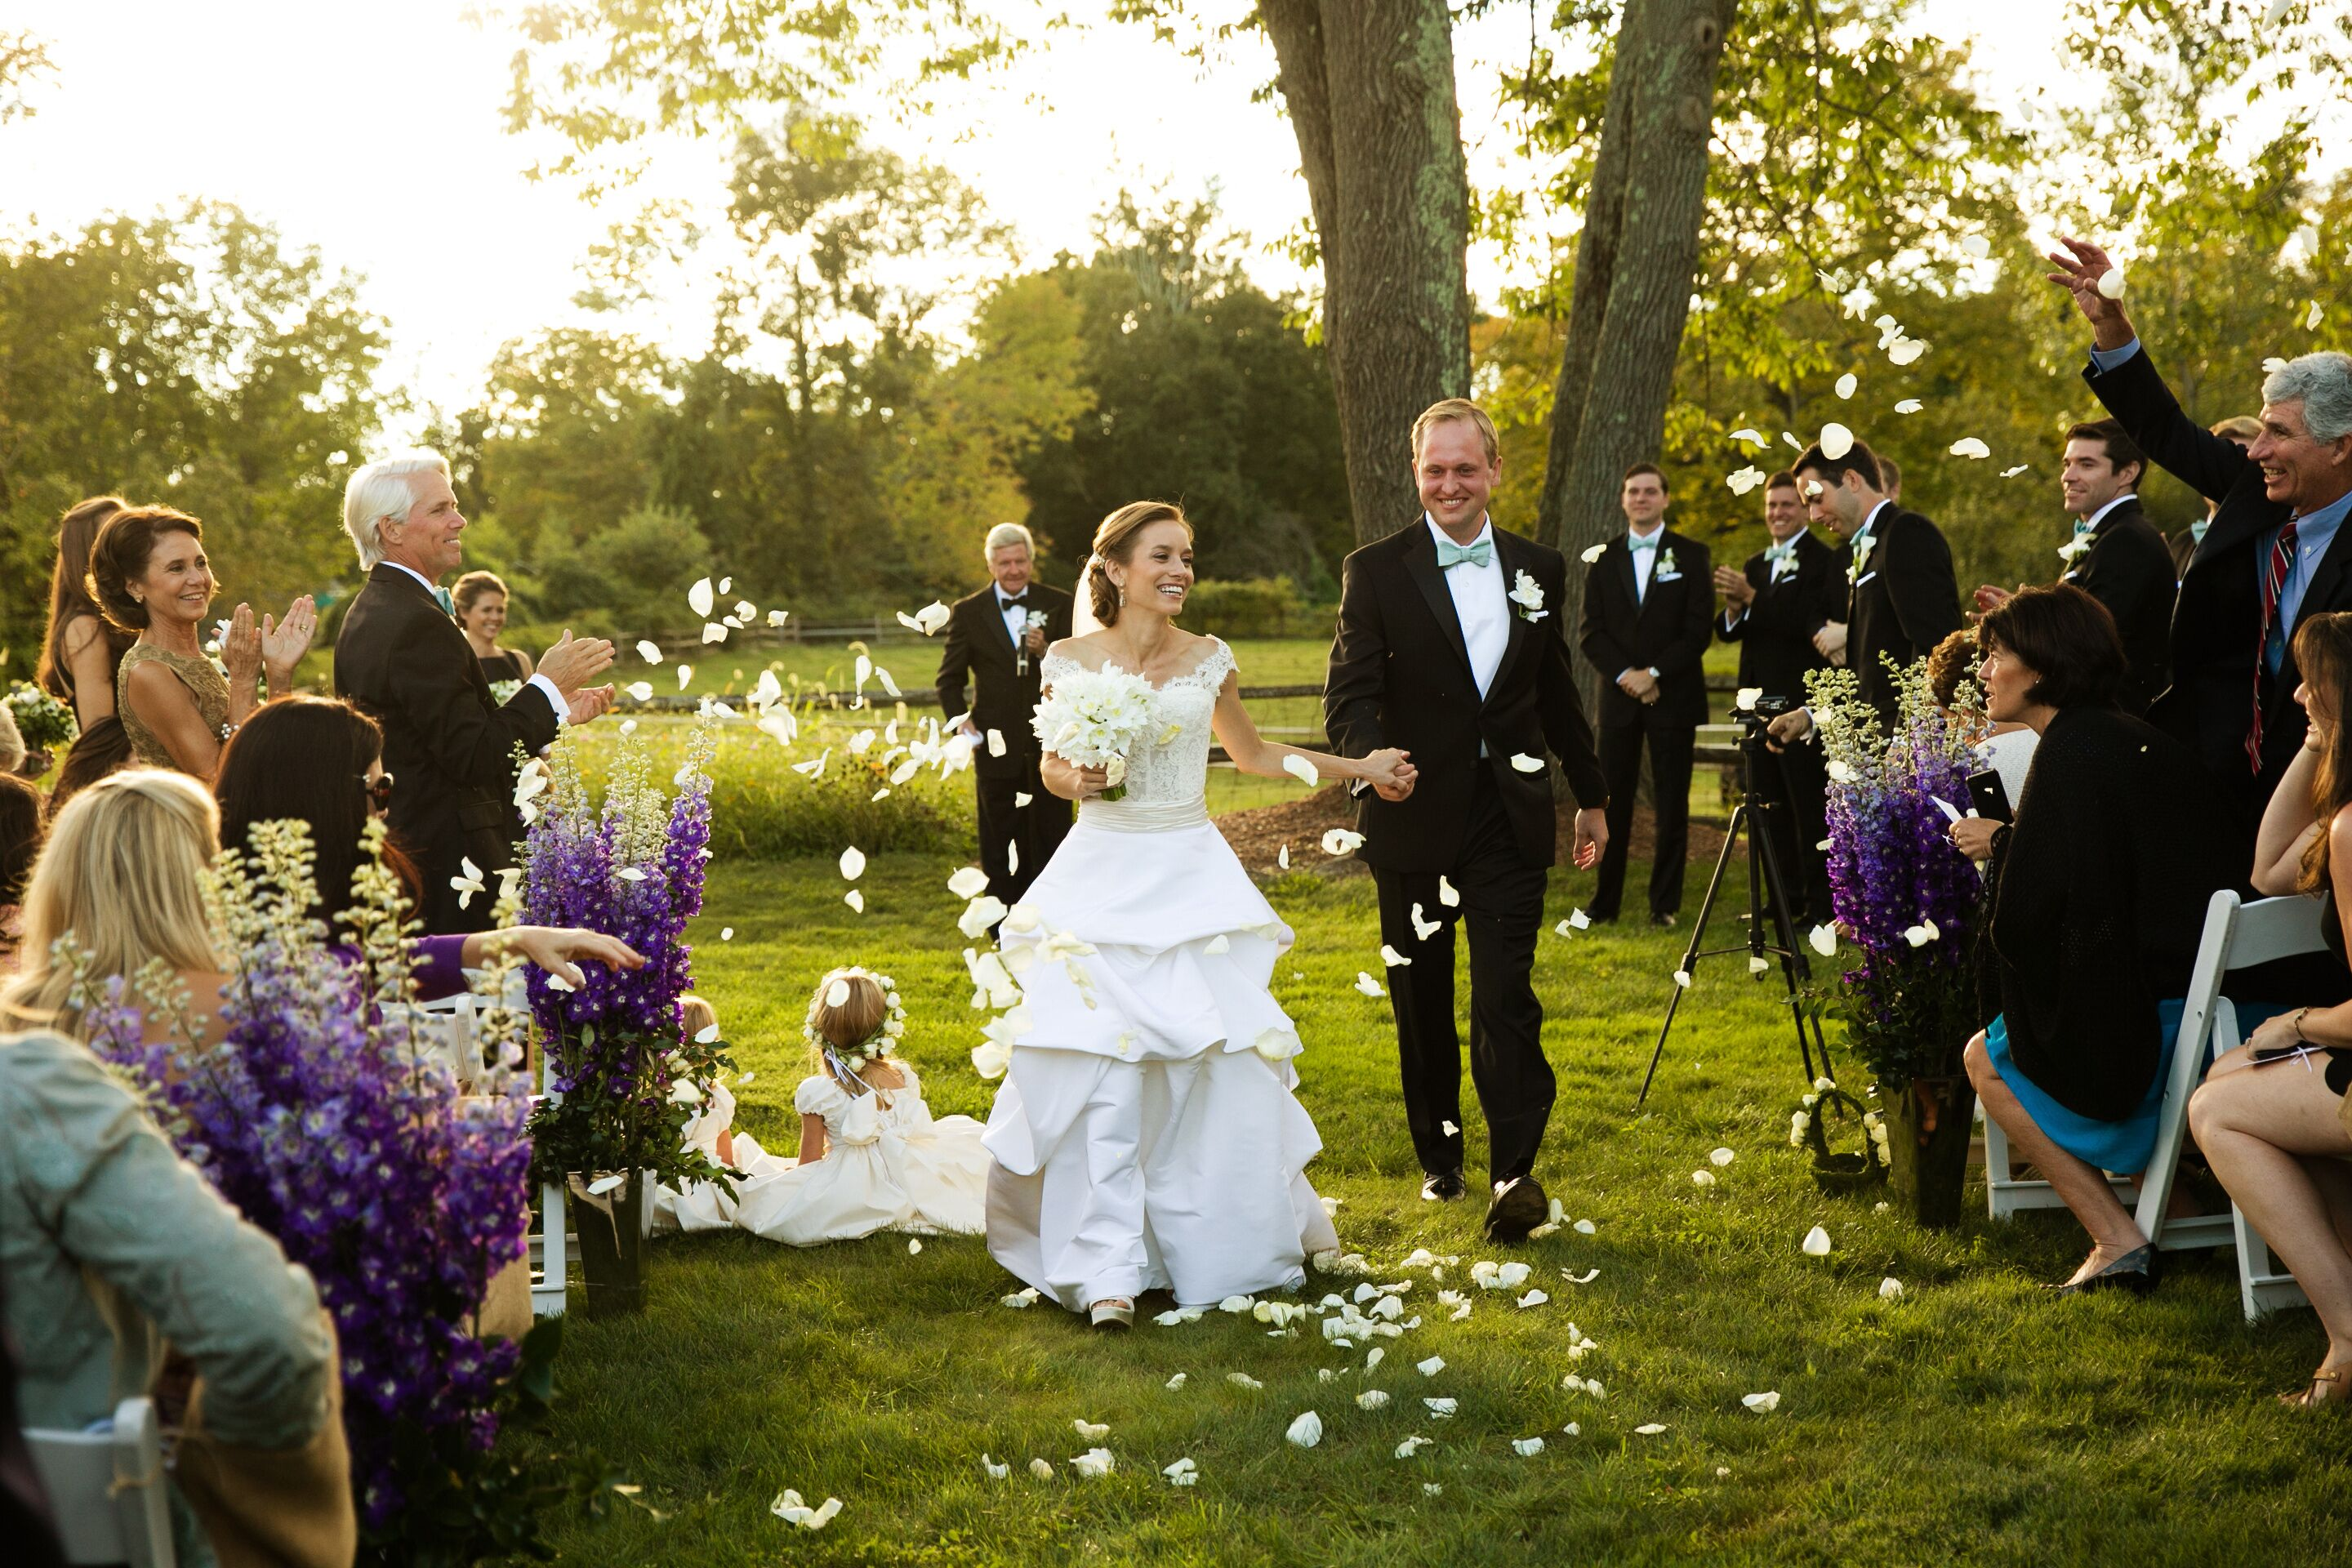 An Intimate Backyard Wedding At A Private Residence In